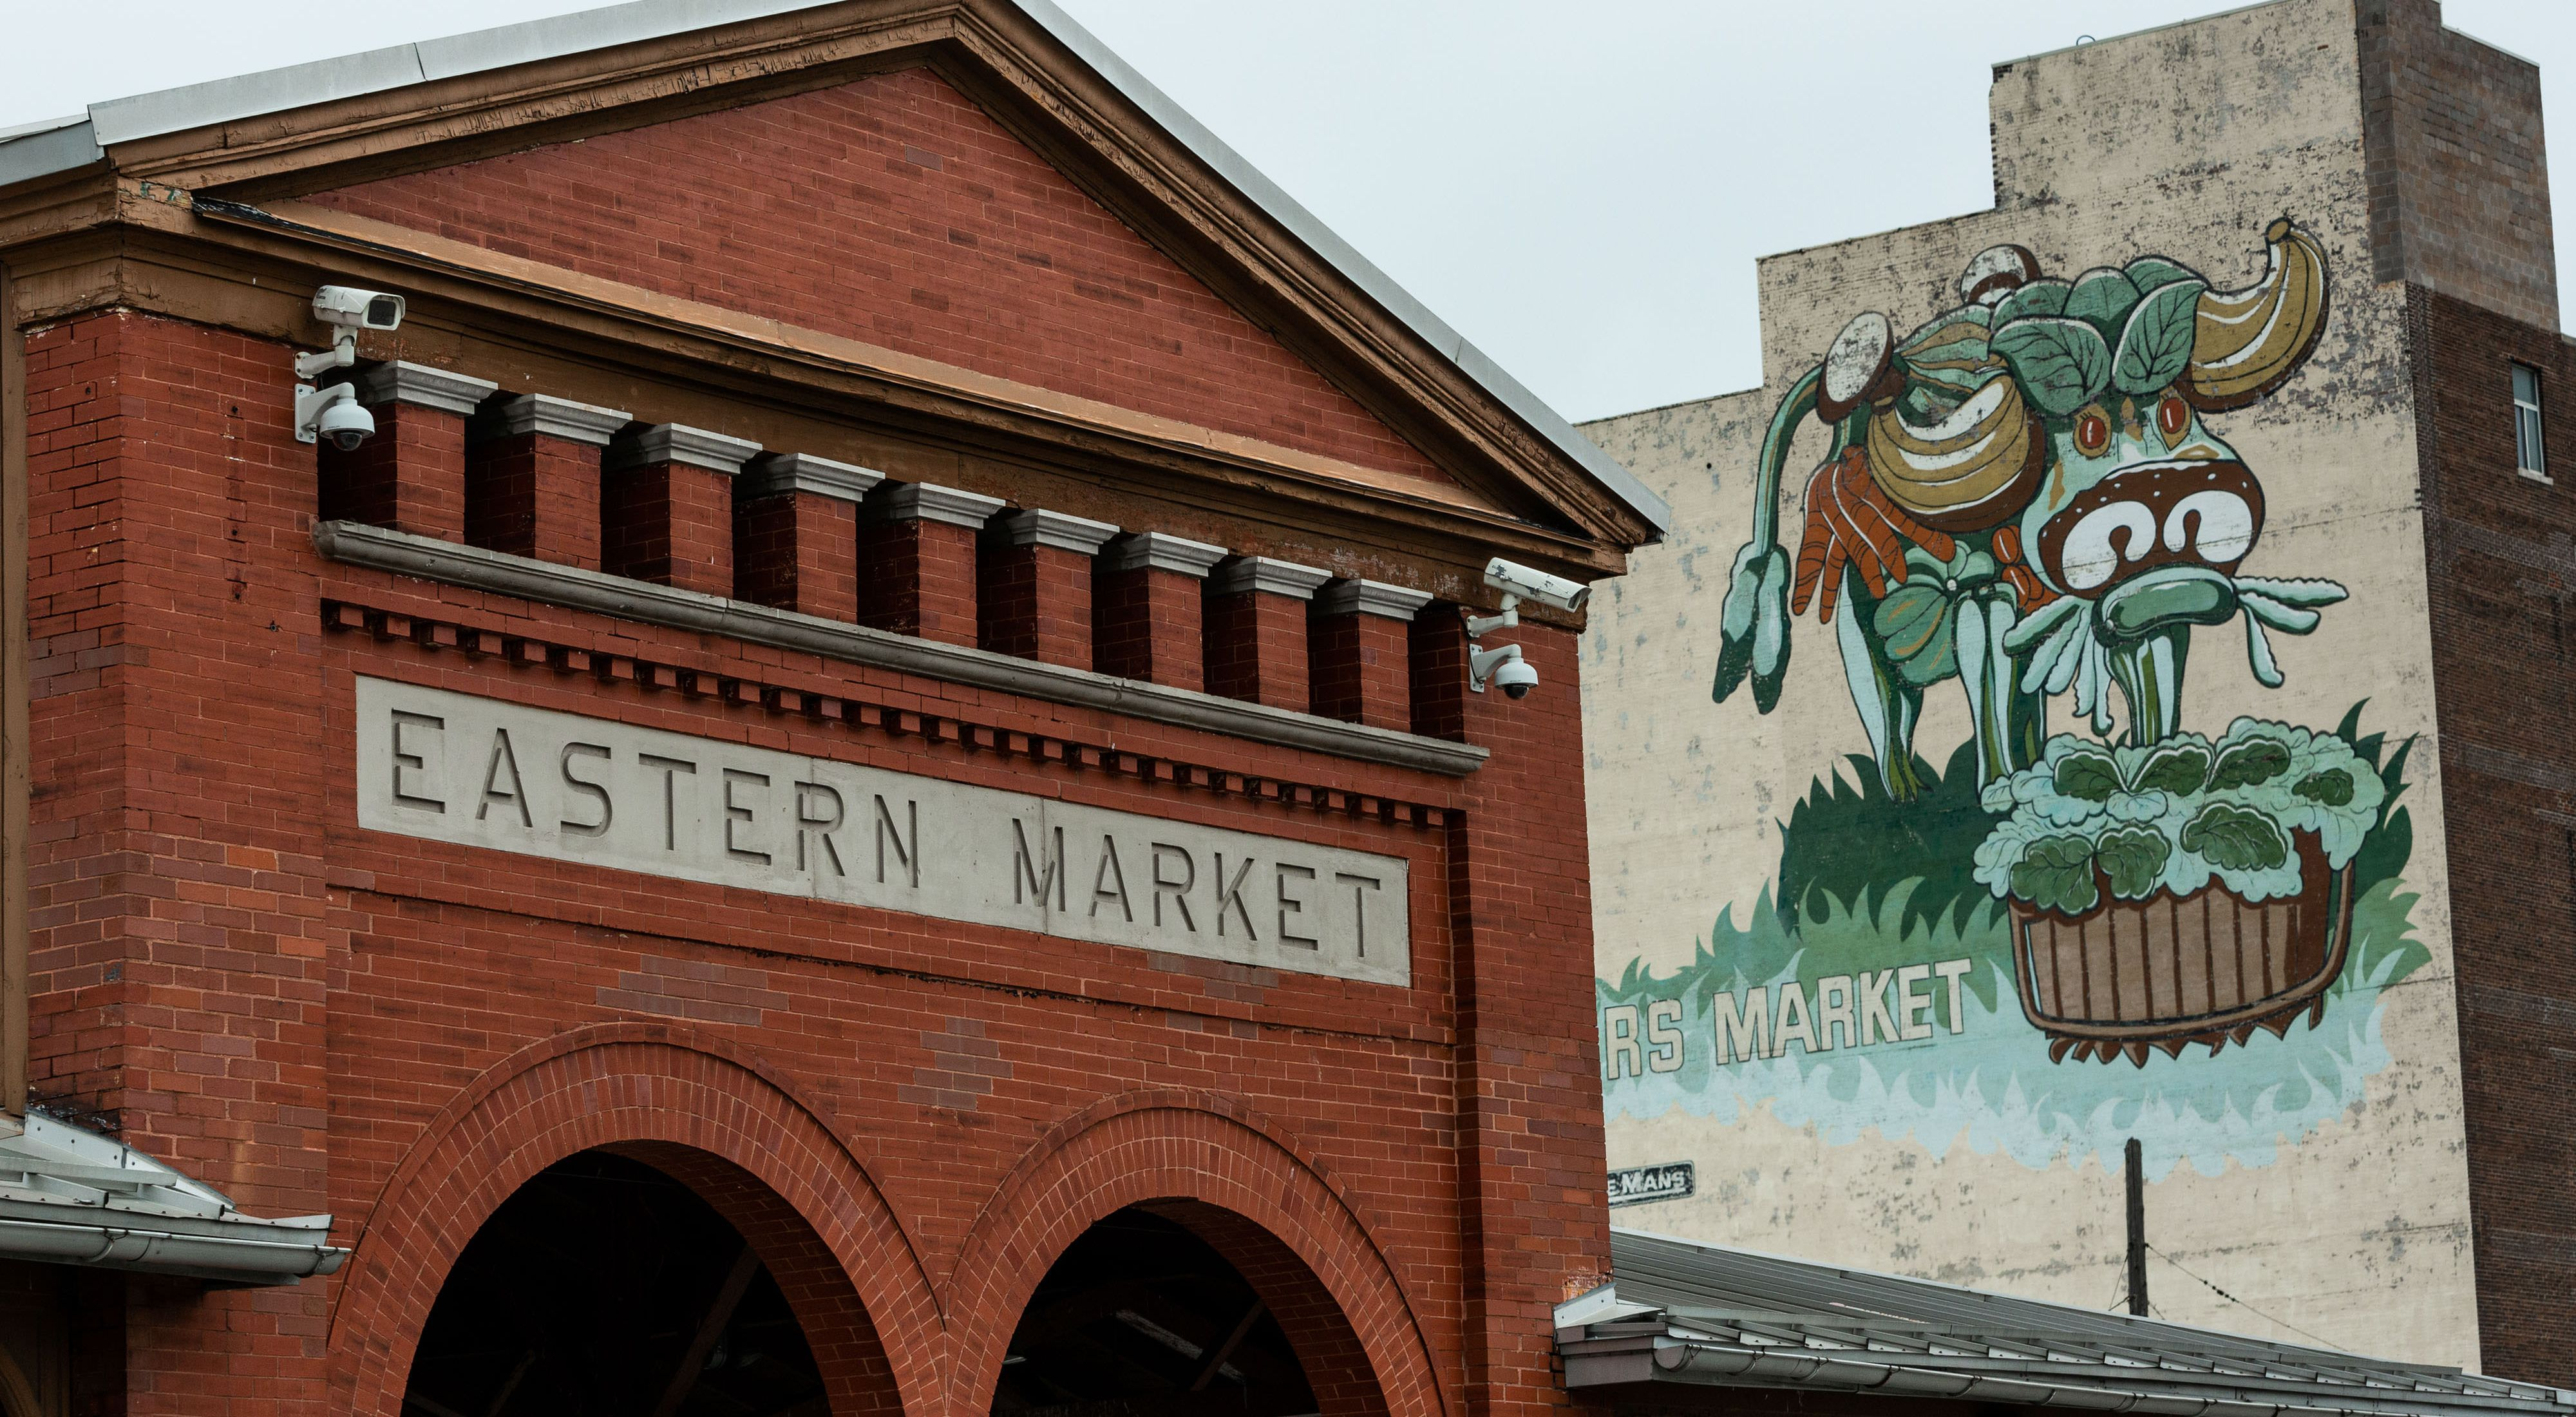 Red brick building for Eastern Market next to building with mural.